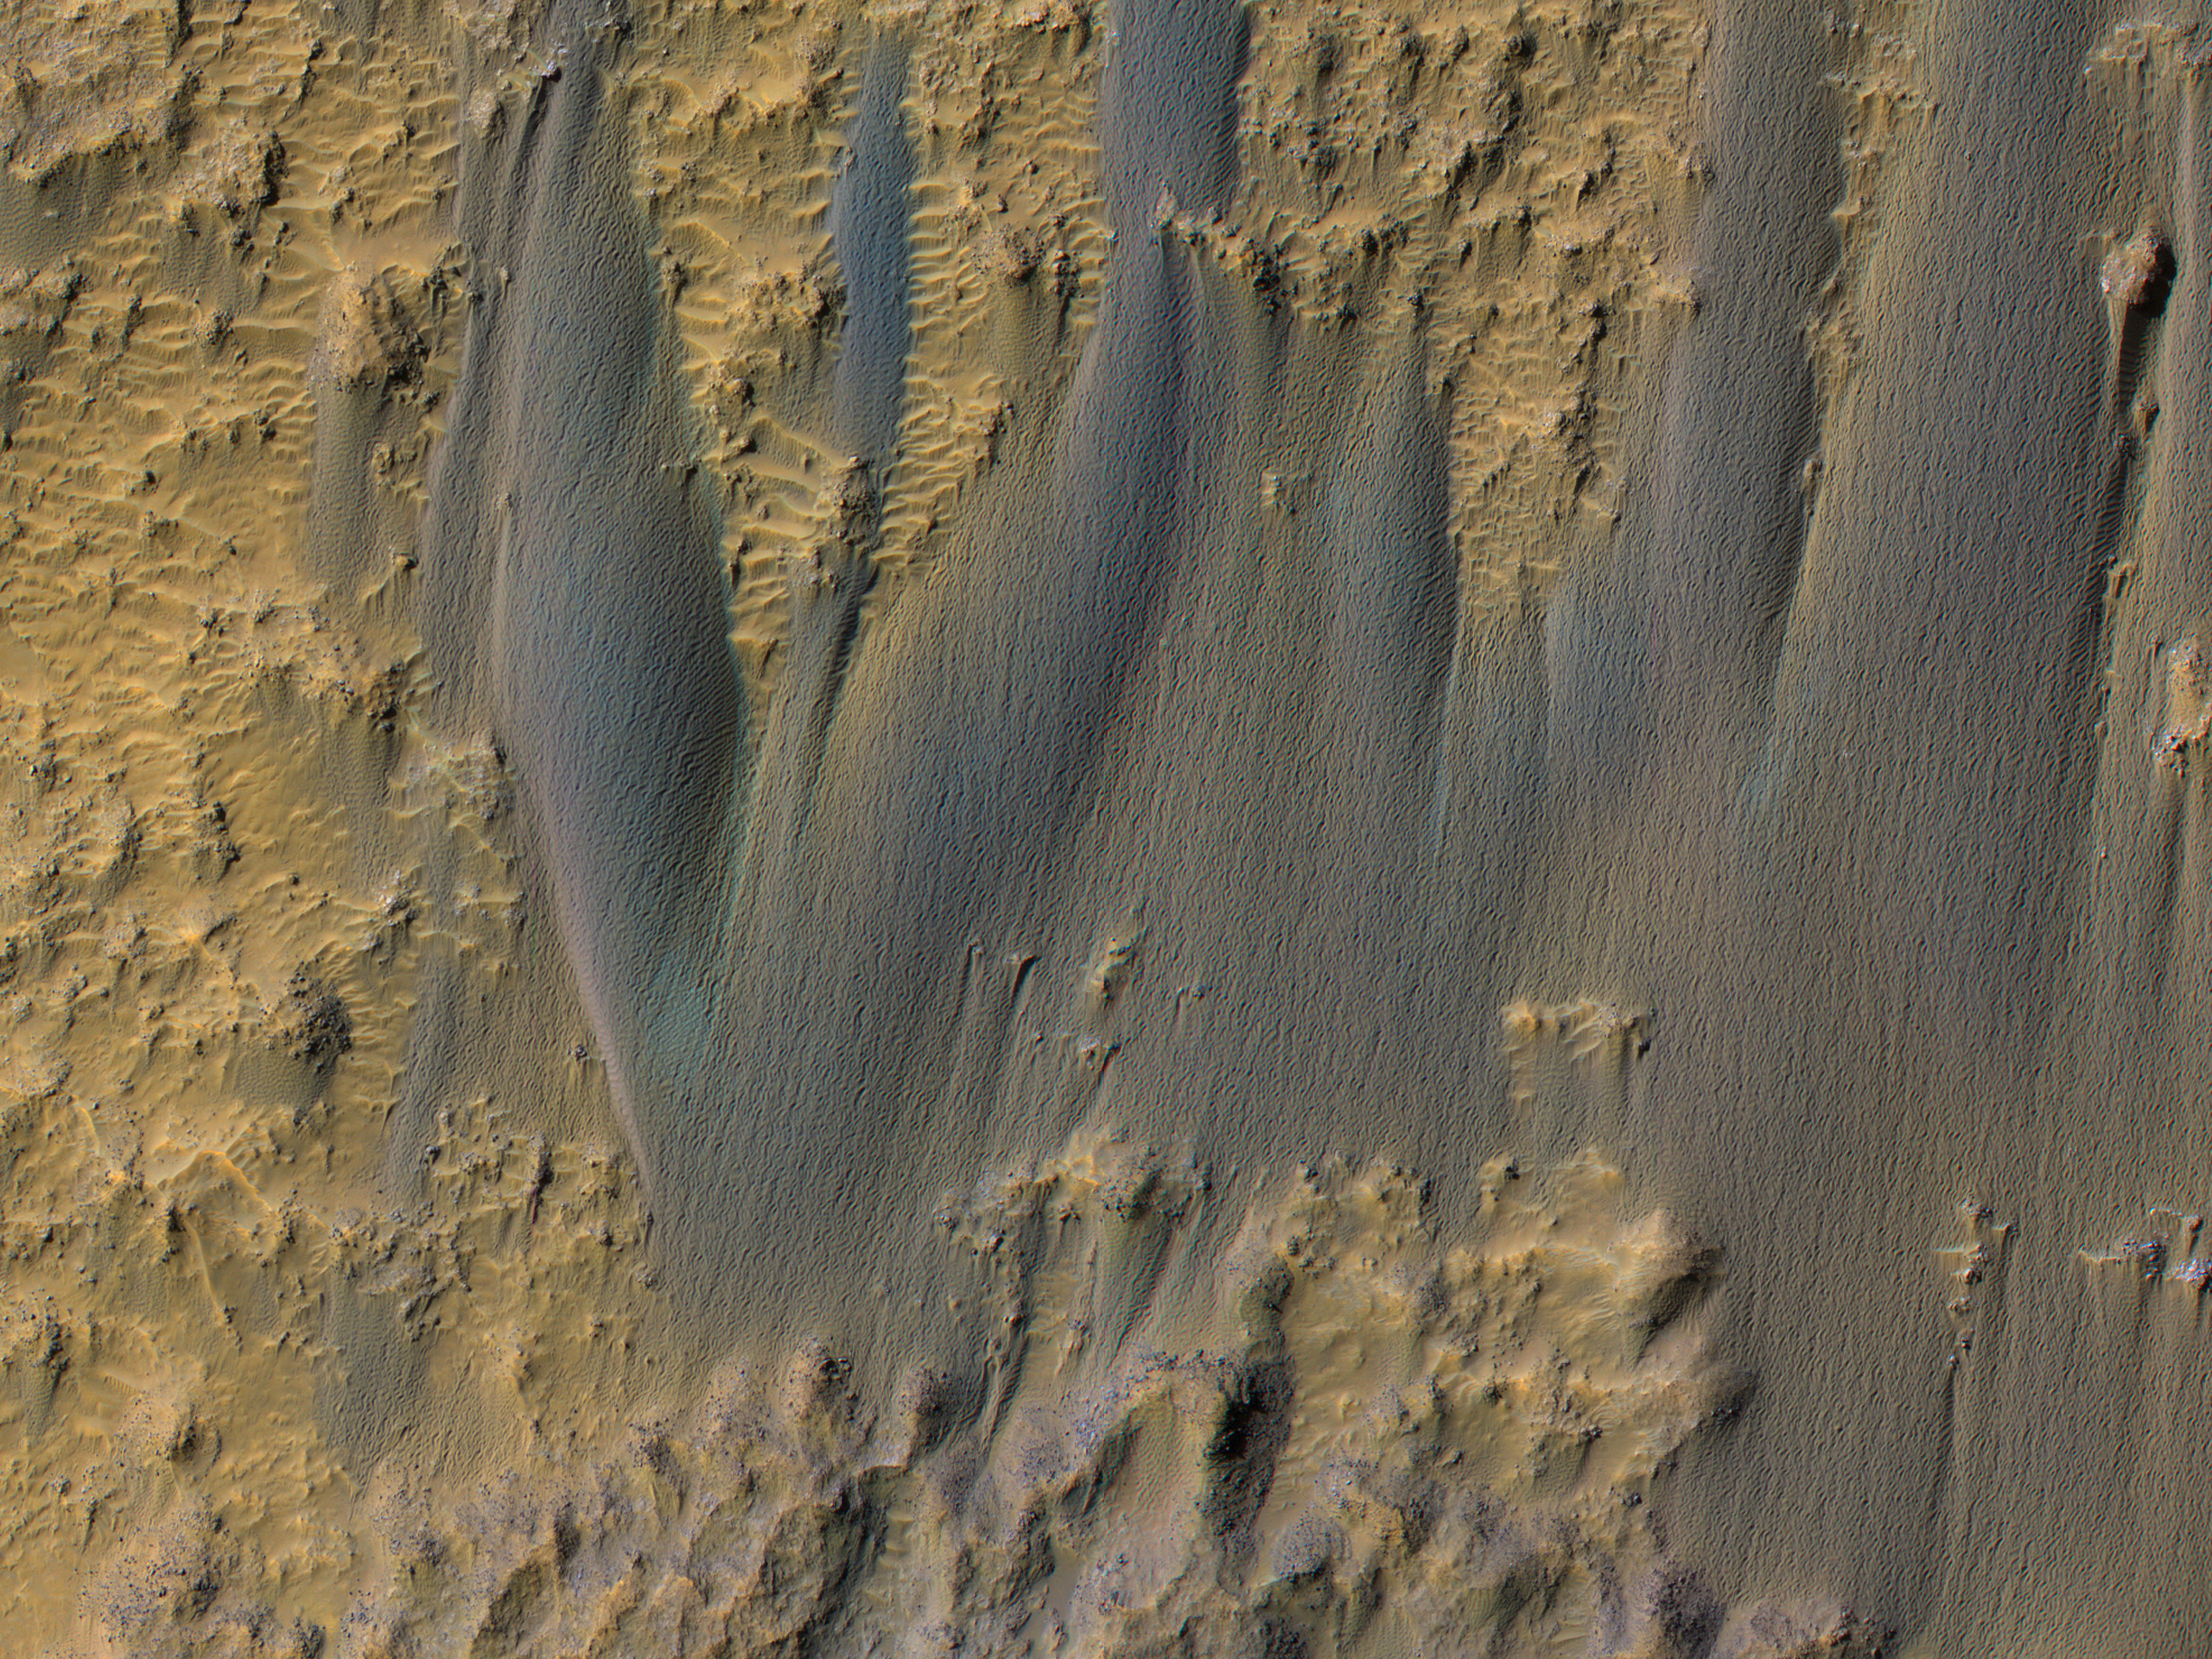 Dunes in Briault Crater